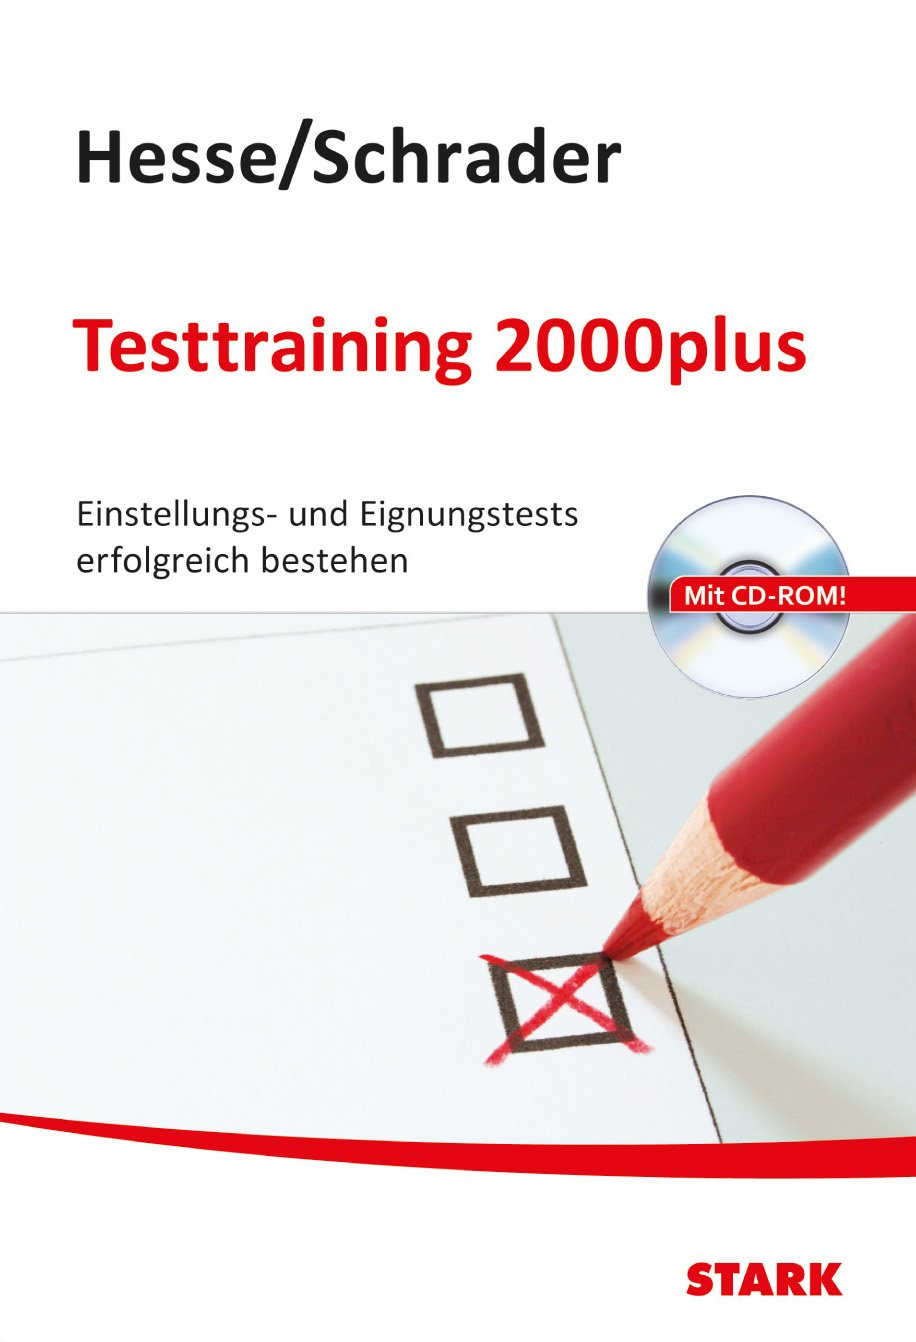 Download STARK Hesse/Schrader: Testtraining 2000plus 